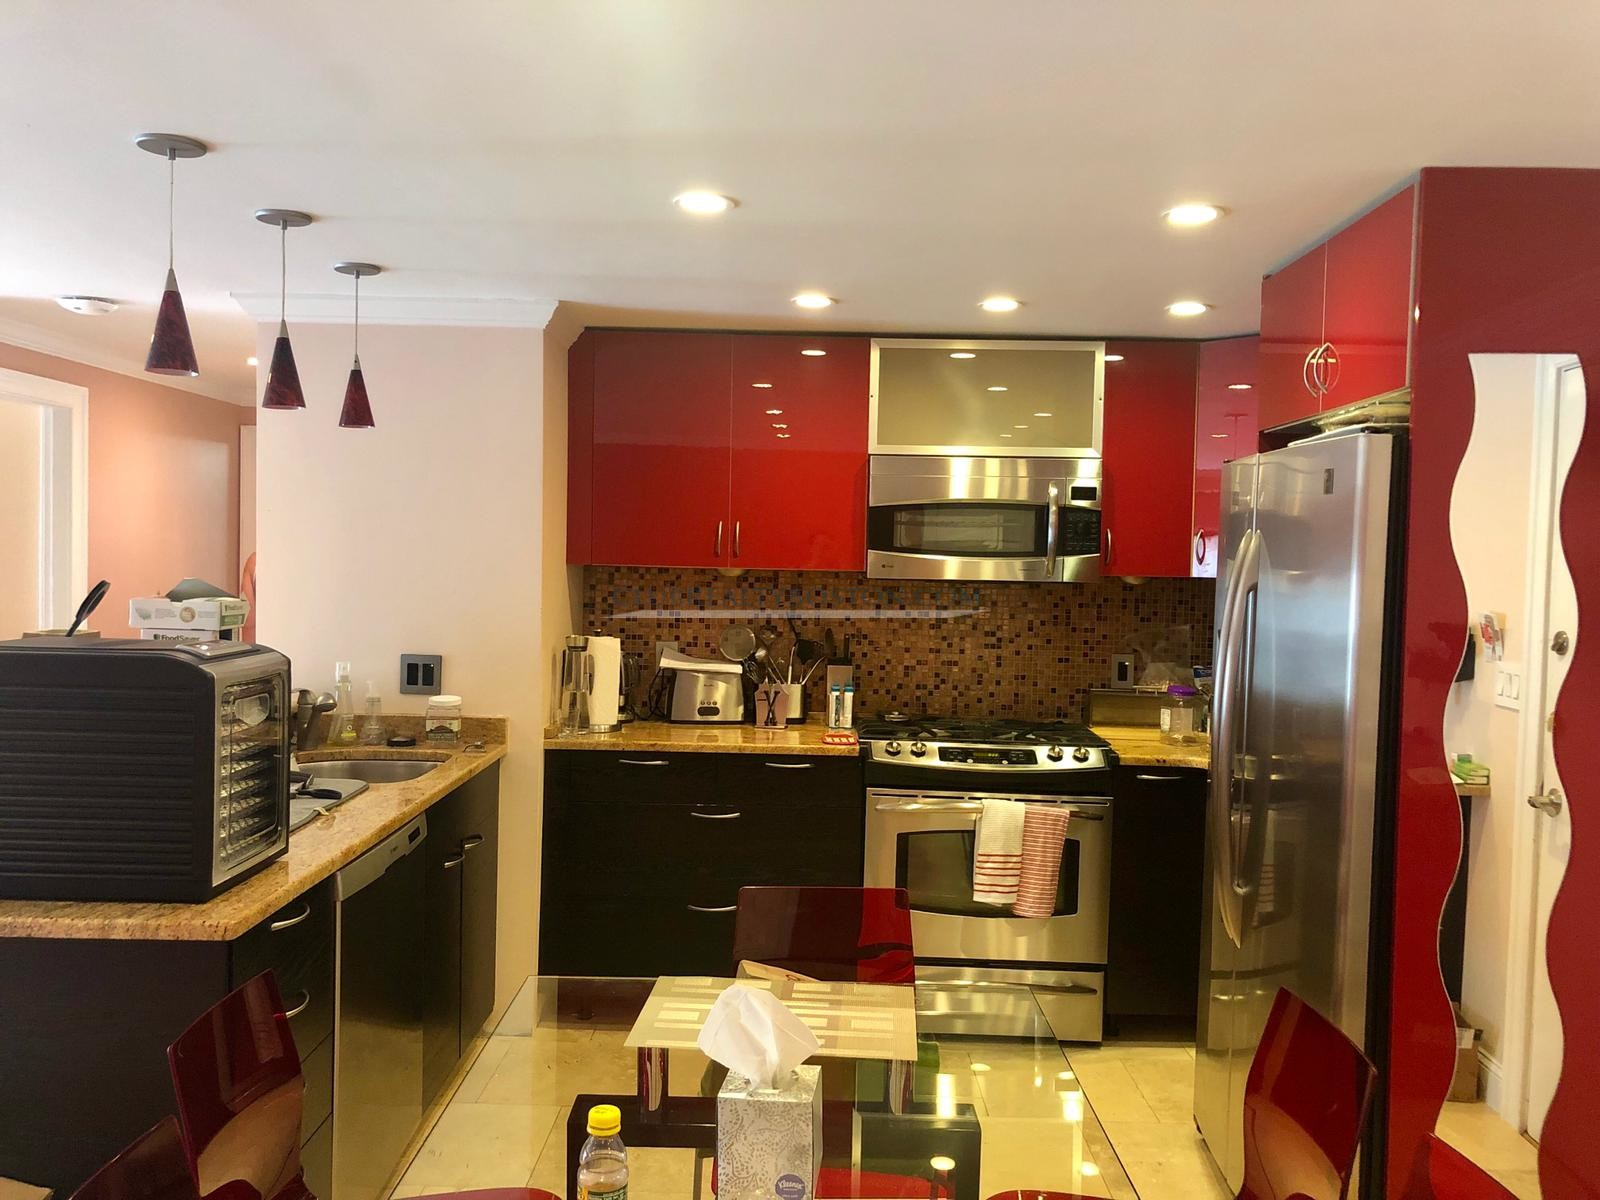 Gorgeous 2bd/1bth, 1st floor, Fully renovated, bamboo floors